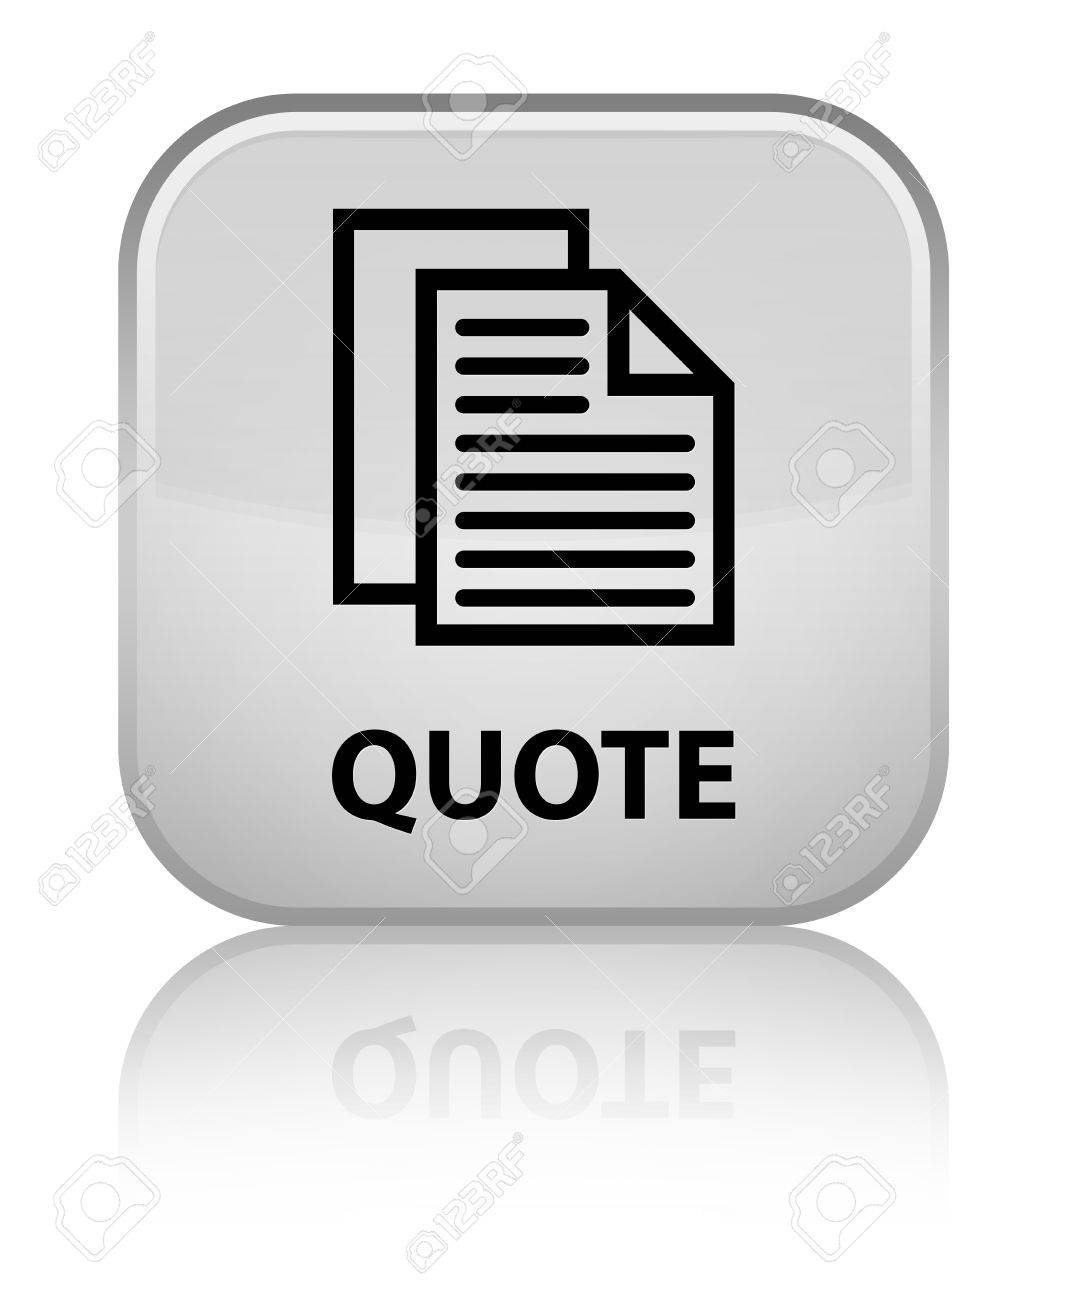 quote document pages icon white square button stock photo quote document pages icon white square button stock photo 38291826